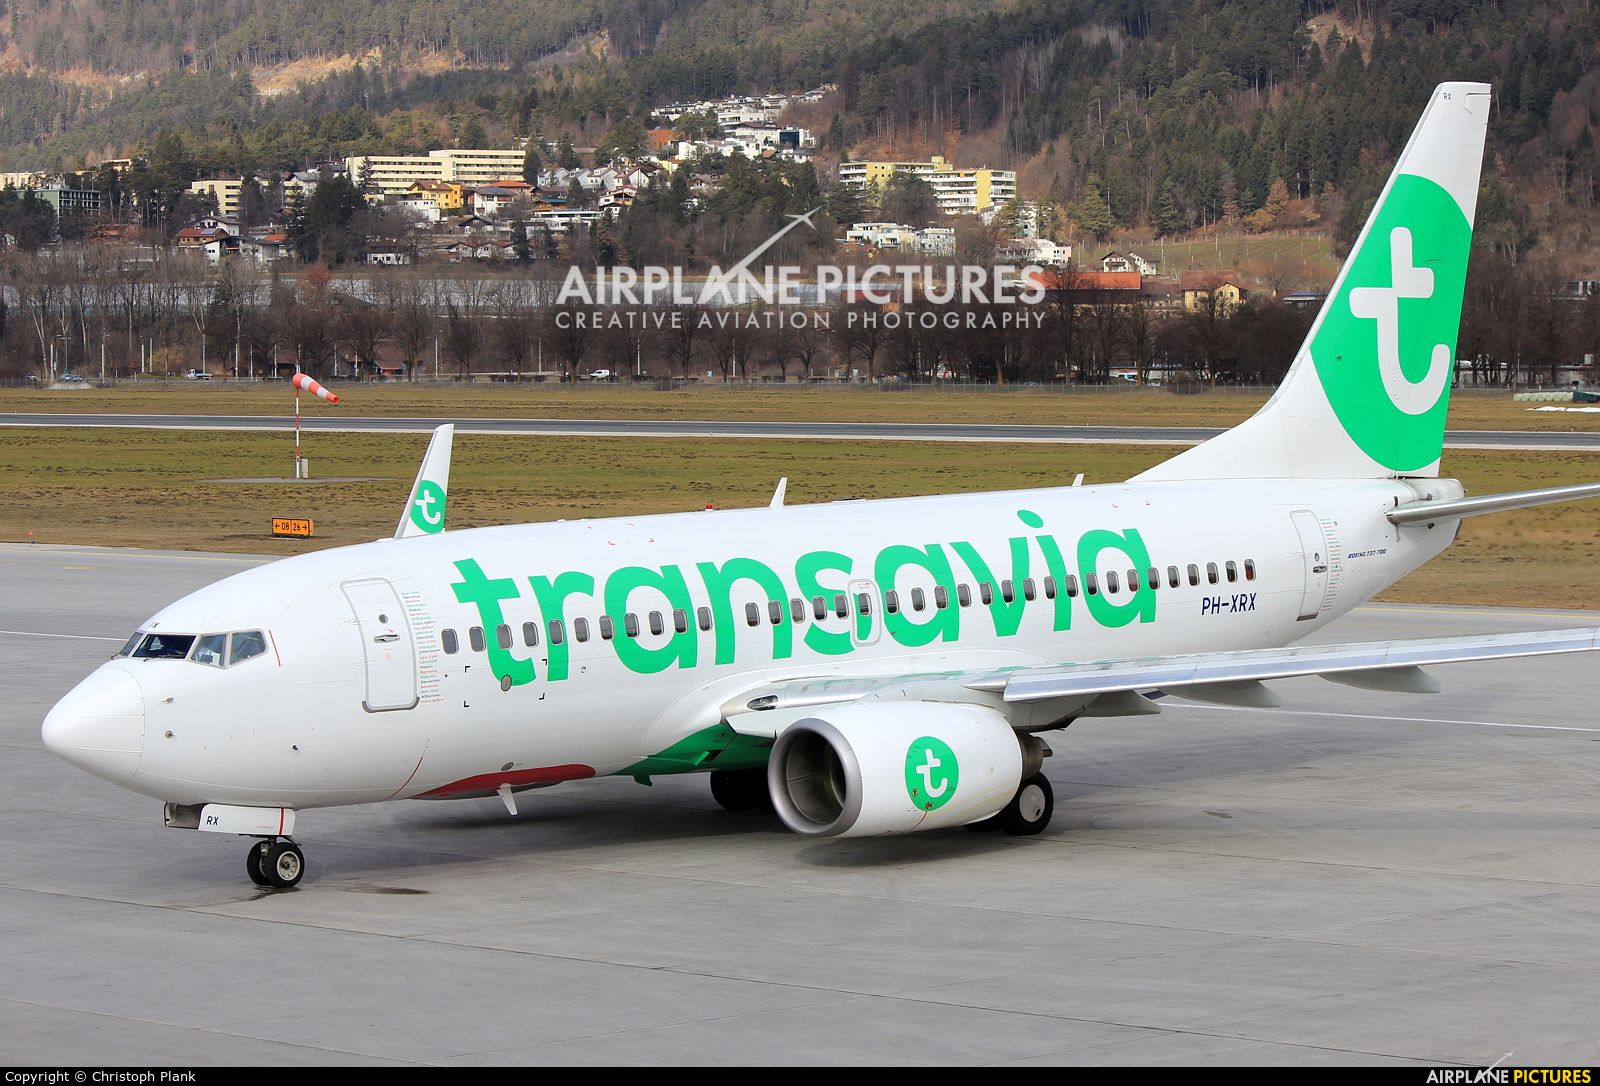 Transavia PH-XRX aircraft at Innsbruck